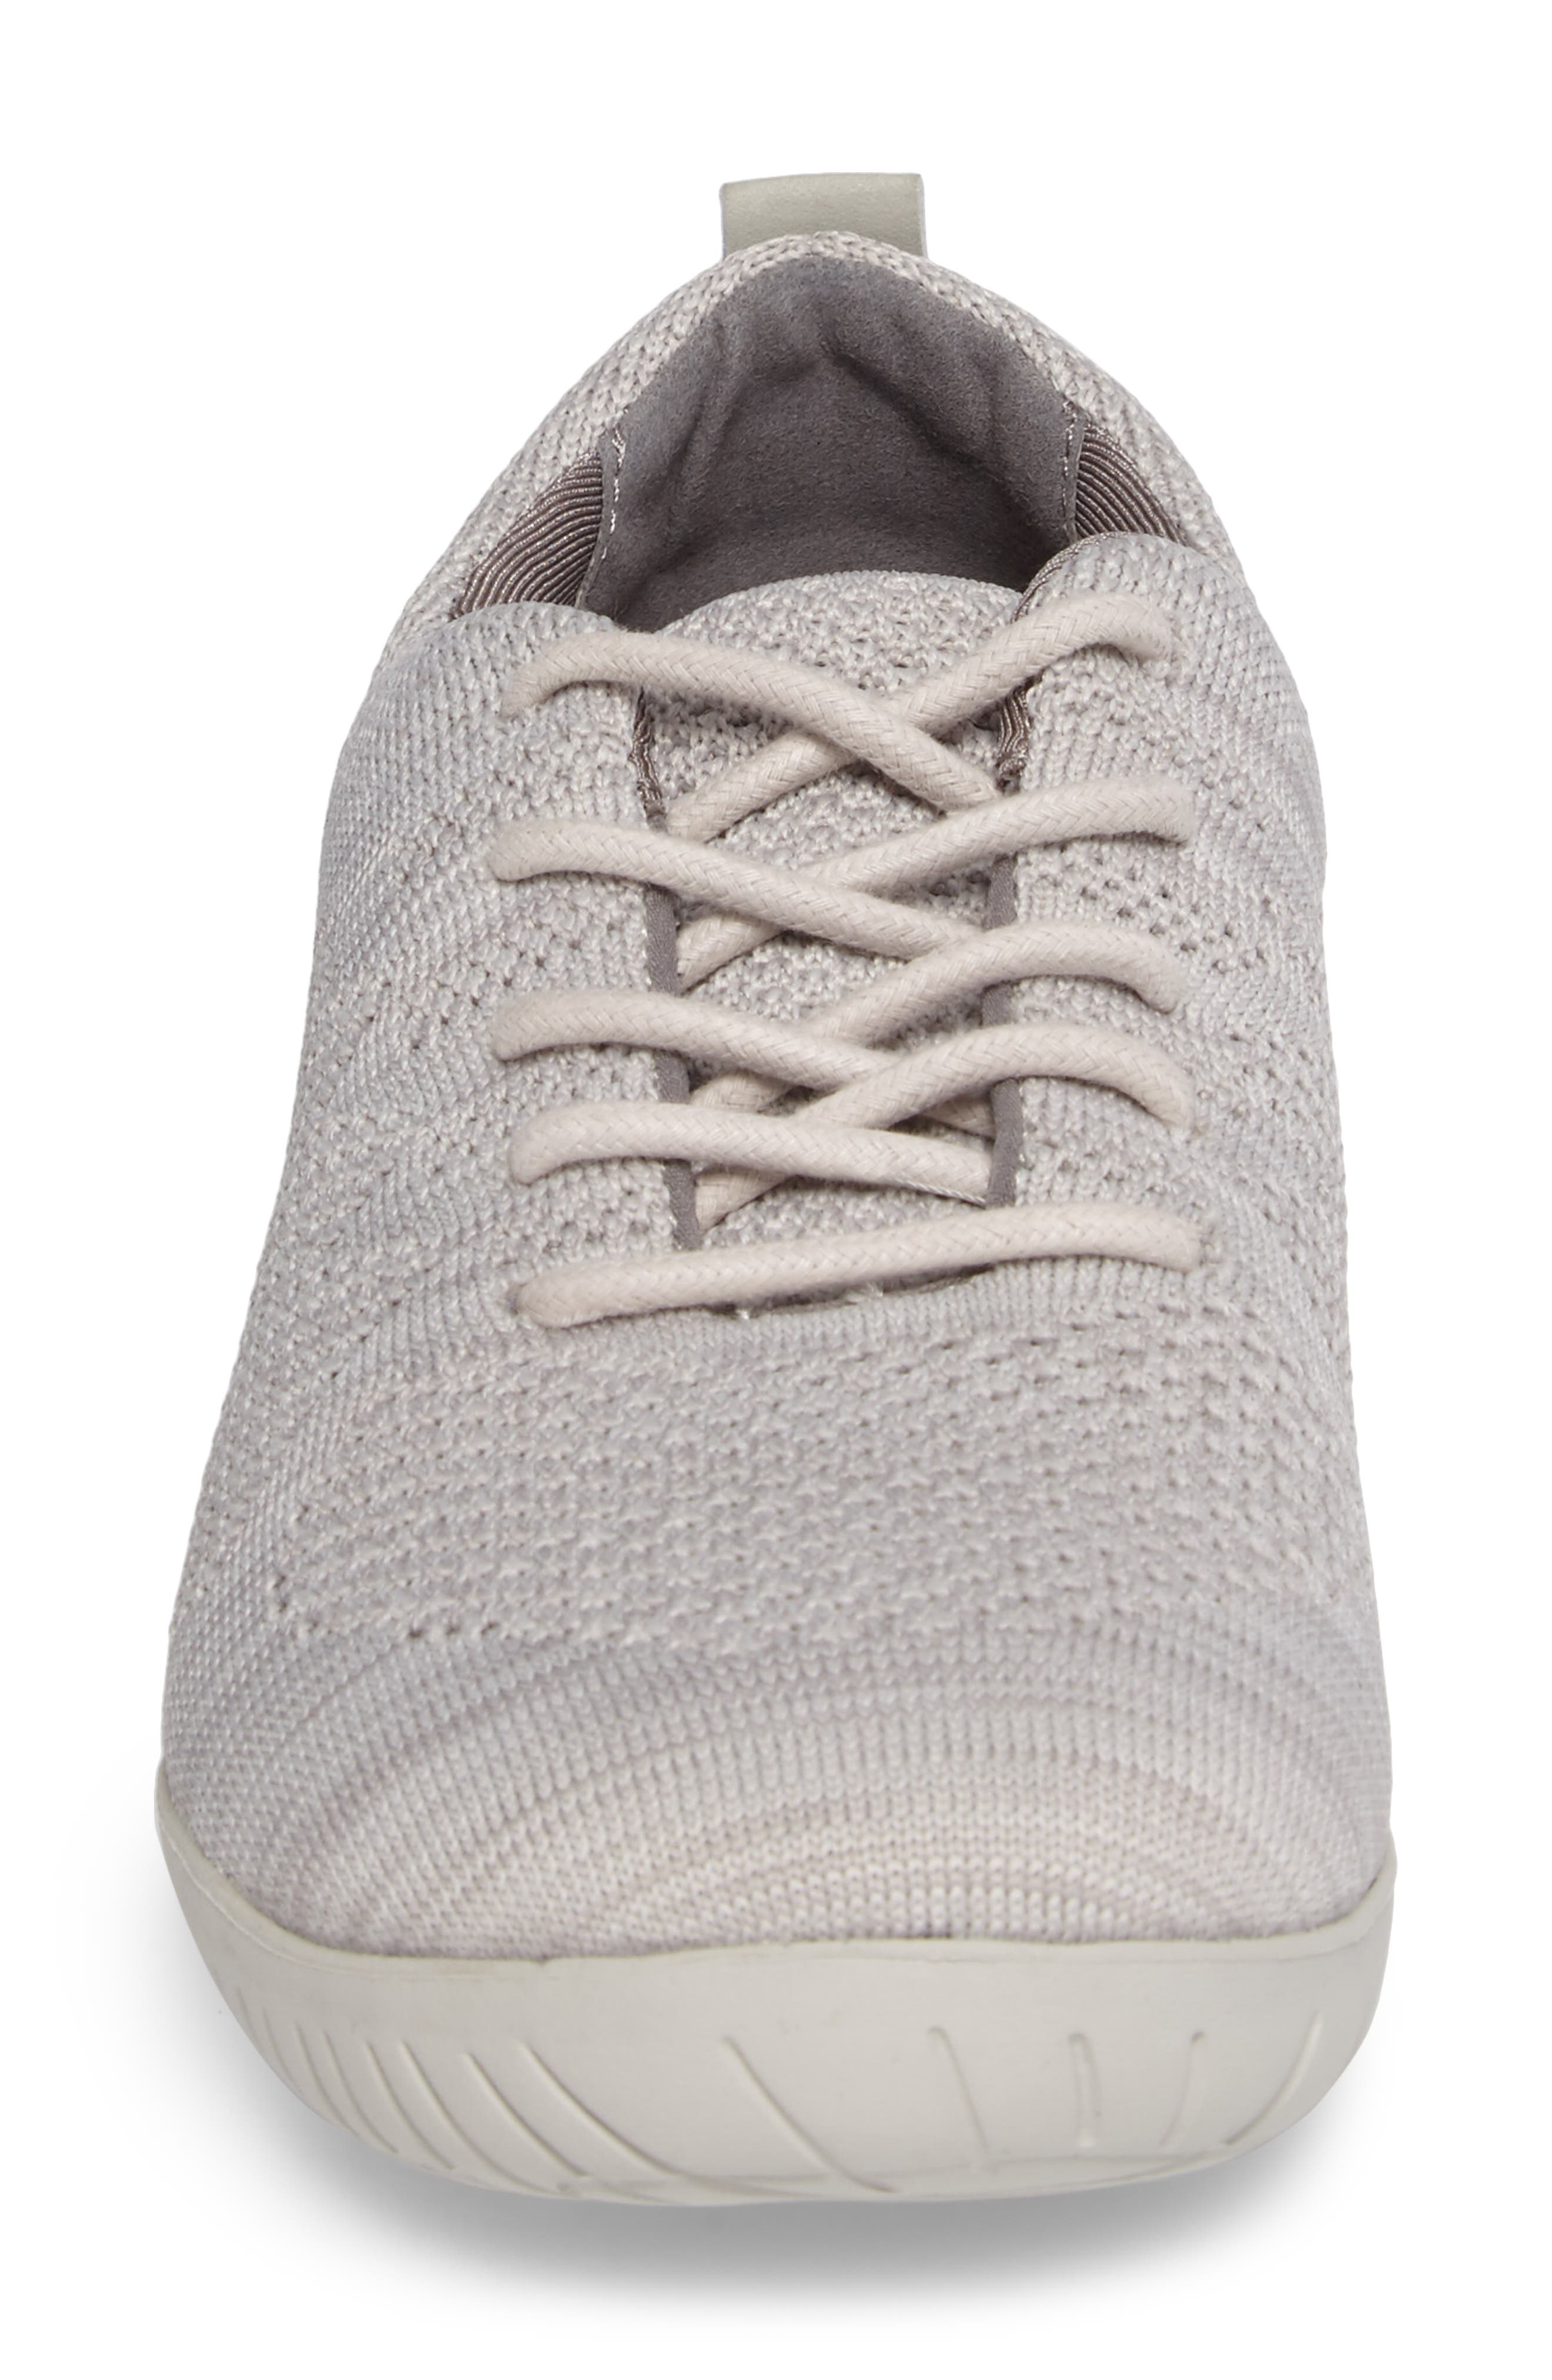 Raelyn Knit Sneaker,                             Alternate thumbnail 4, color,                             020